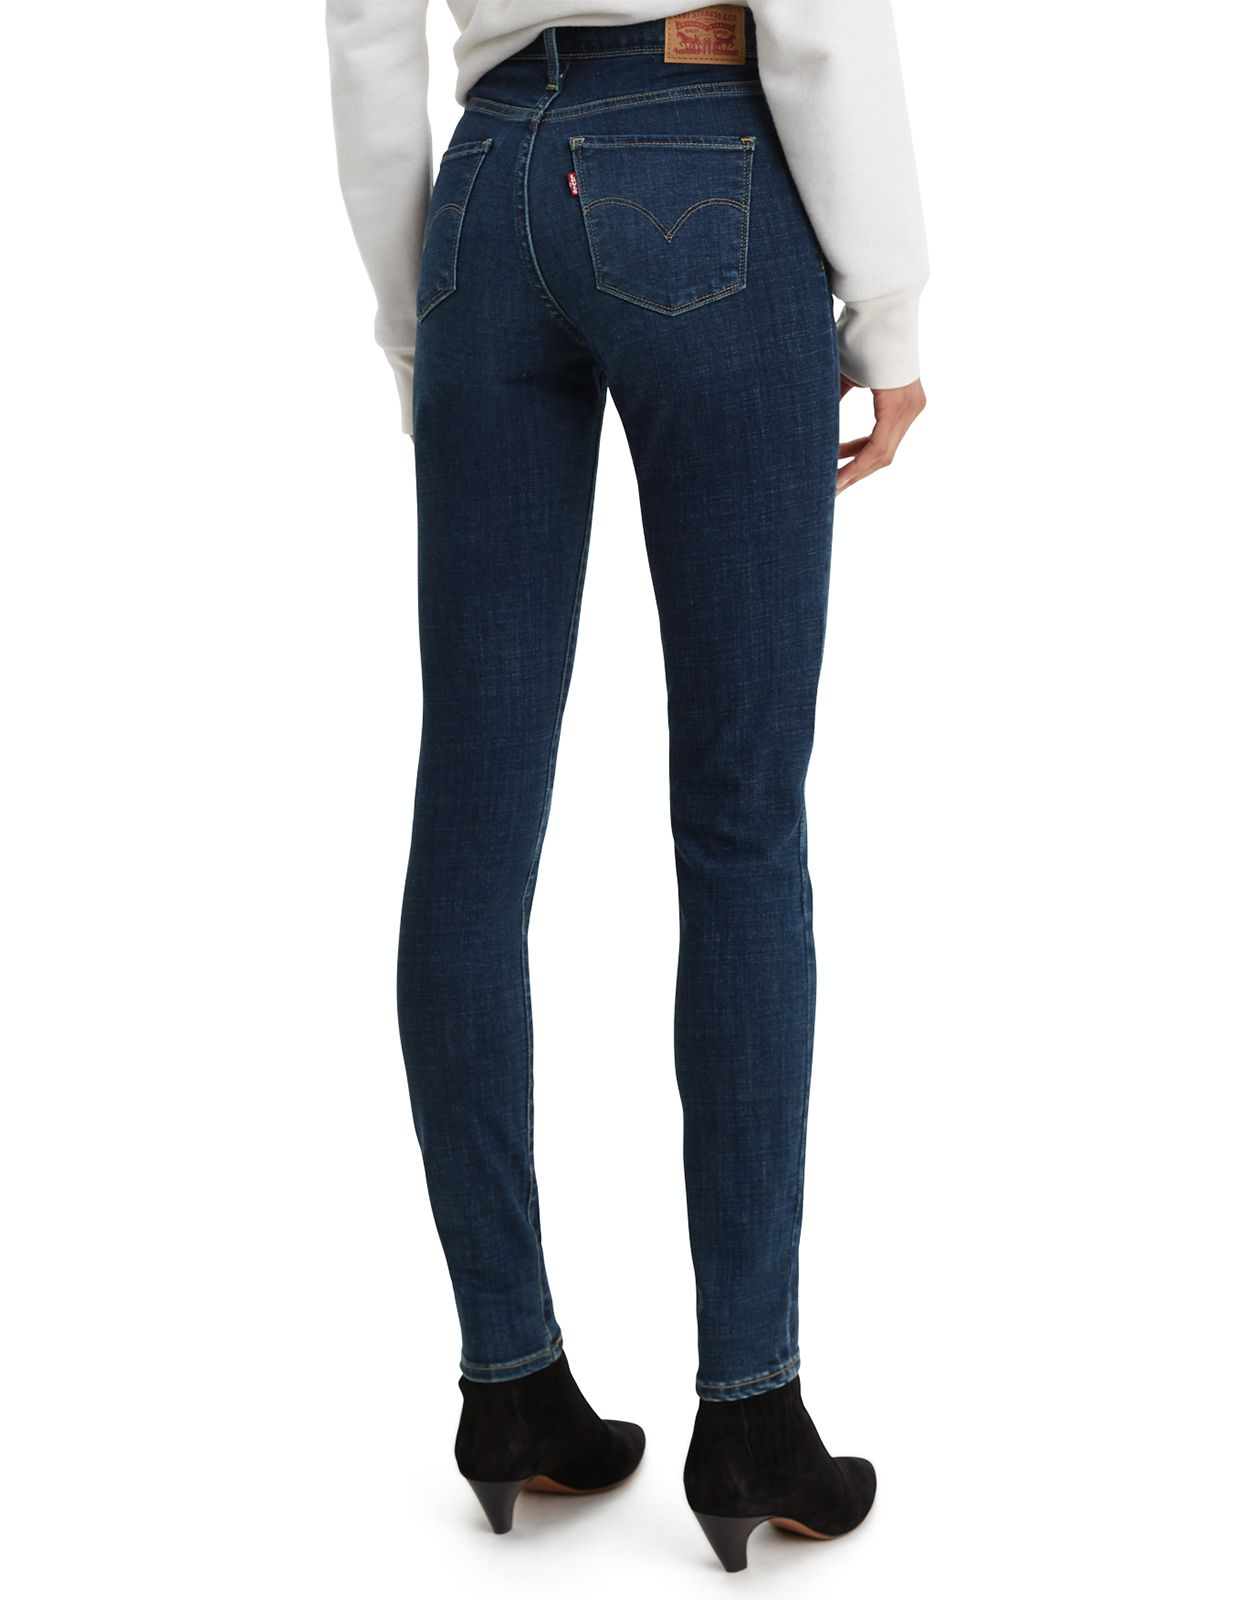 Levi's Women's 311 Shaping Skinny Stretch Mid Rise Skinny Jeans - Maui Views